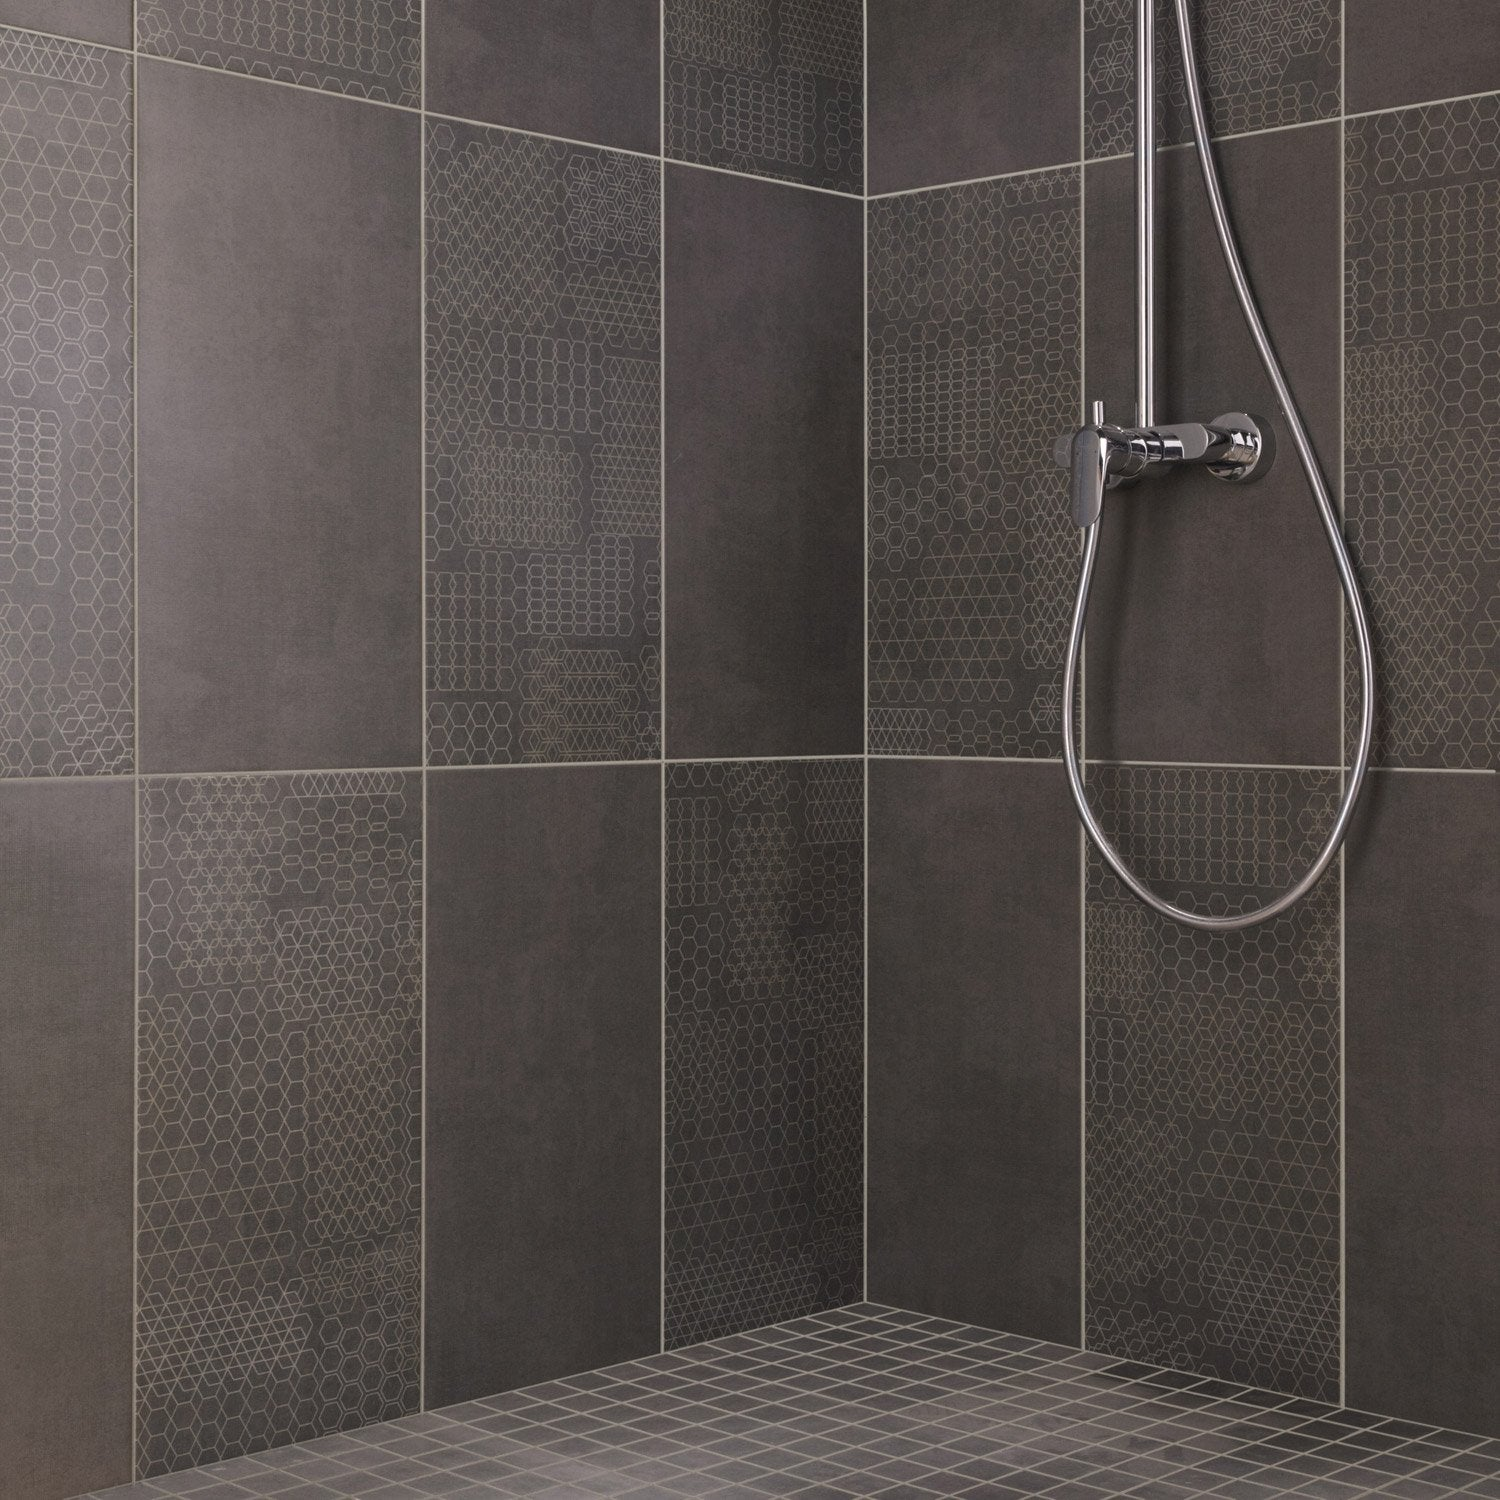 Fa ence mur anthracite tweed x cm leroy merlin for Poser joint salle de bain